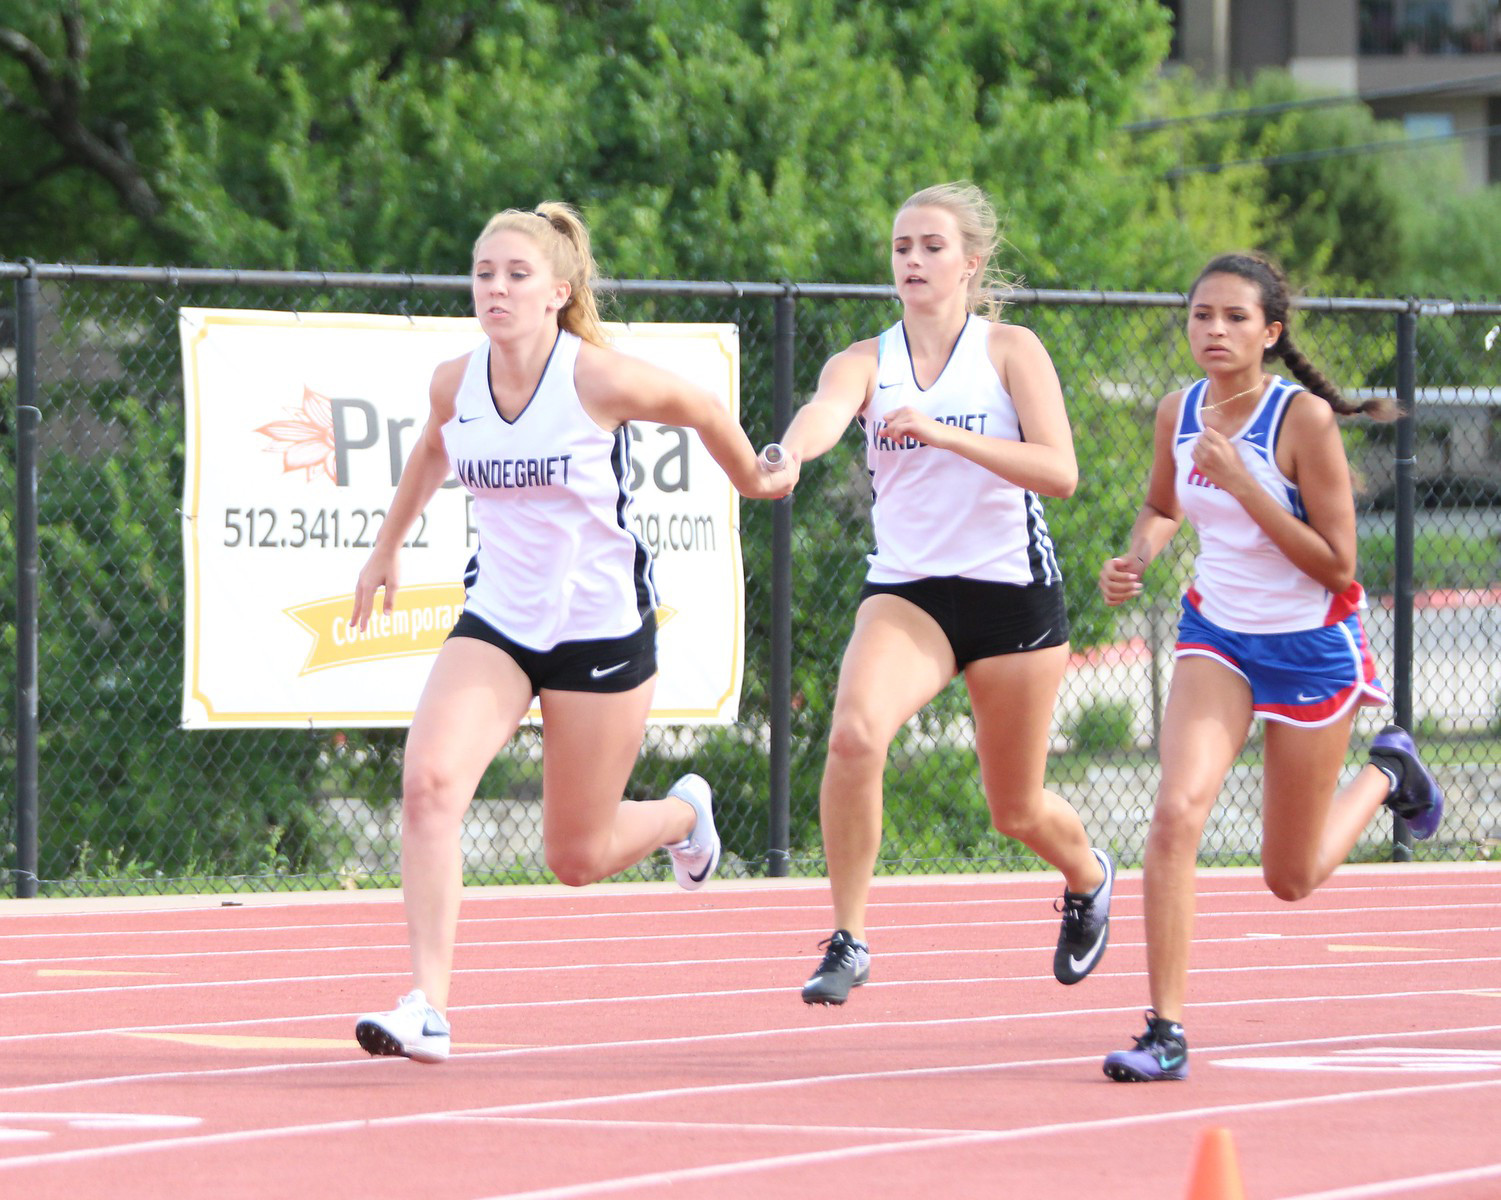 Vandegrift's girls relay team of Kyla Peeples, Taylor Grikis, Emi McCollum and Adeline Carter won the 4x400 event at last week's 25-6A meet.